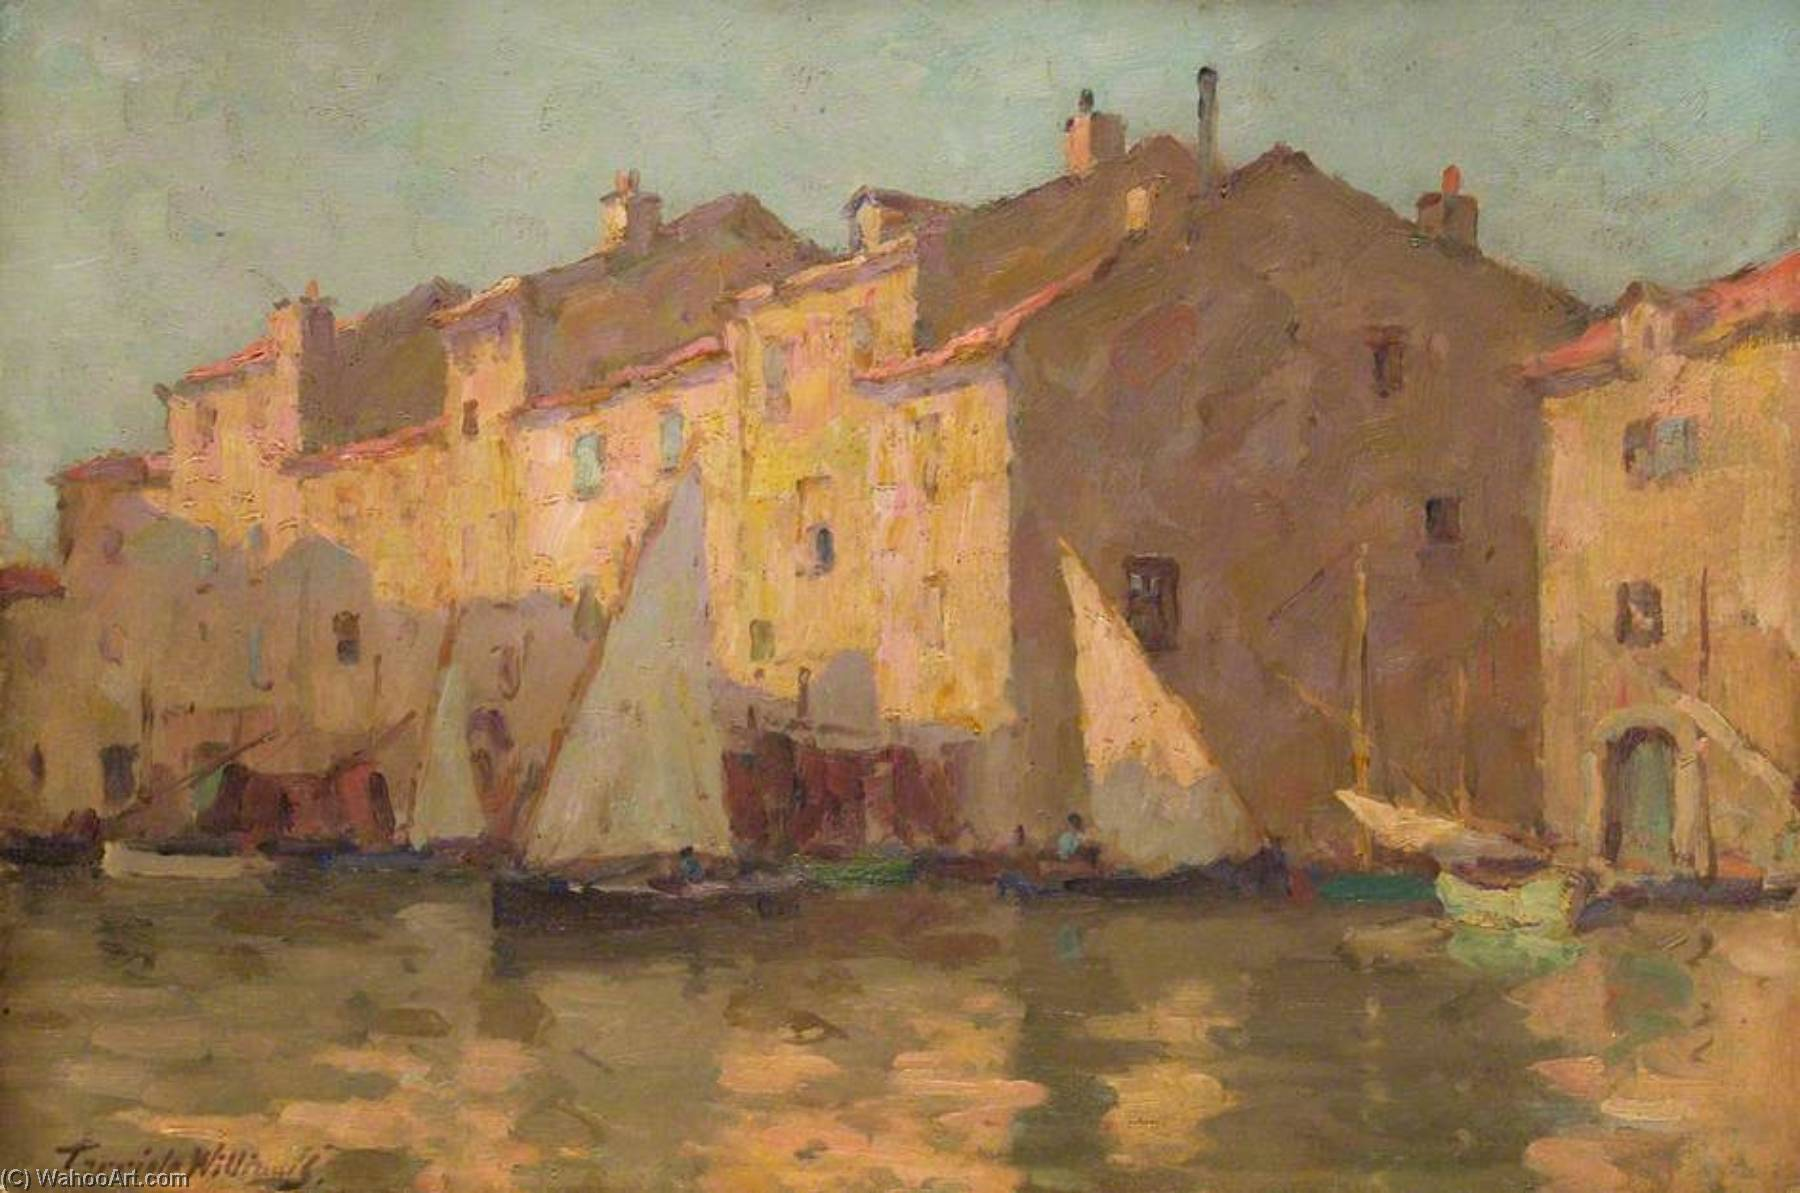 Order Paintings Reproductions | A Canal, Martigues, Provence, France by Terrick John Williams | WahooArt.com